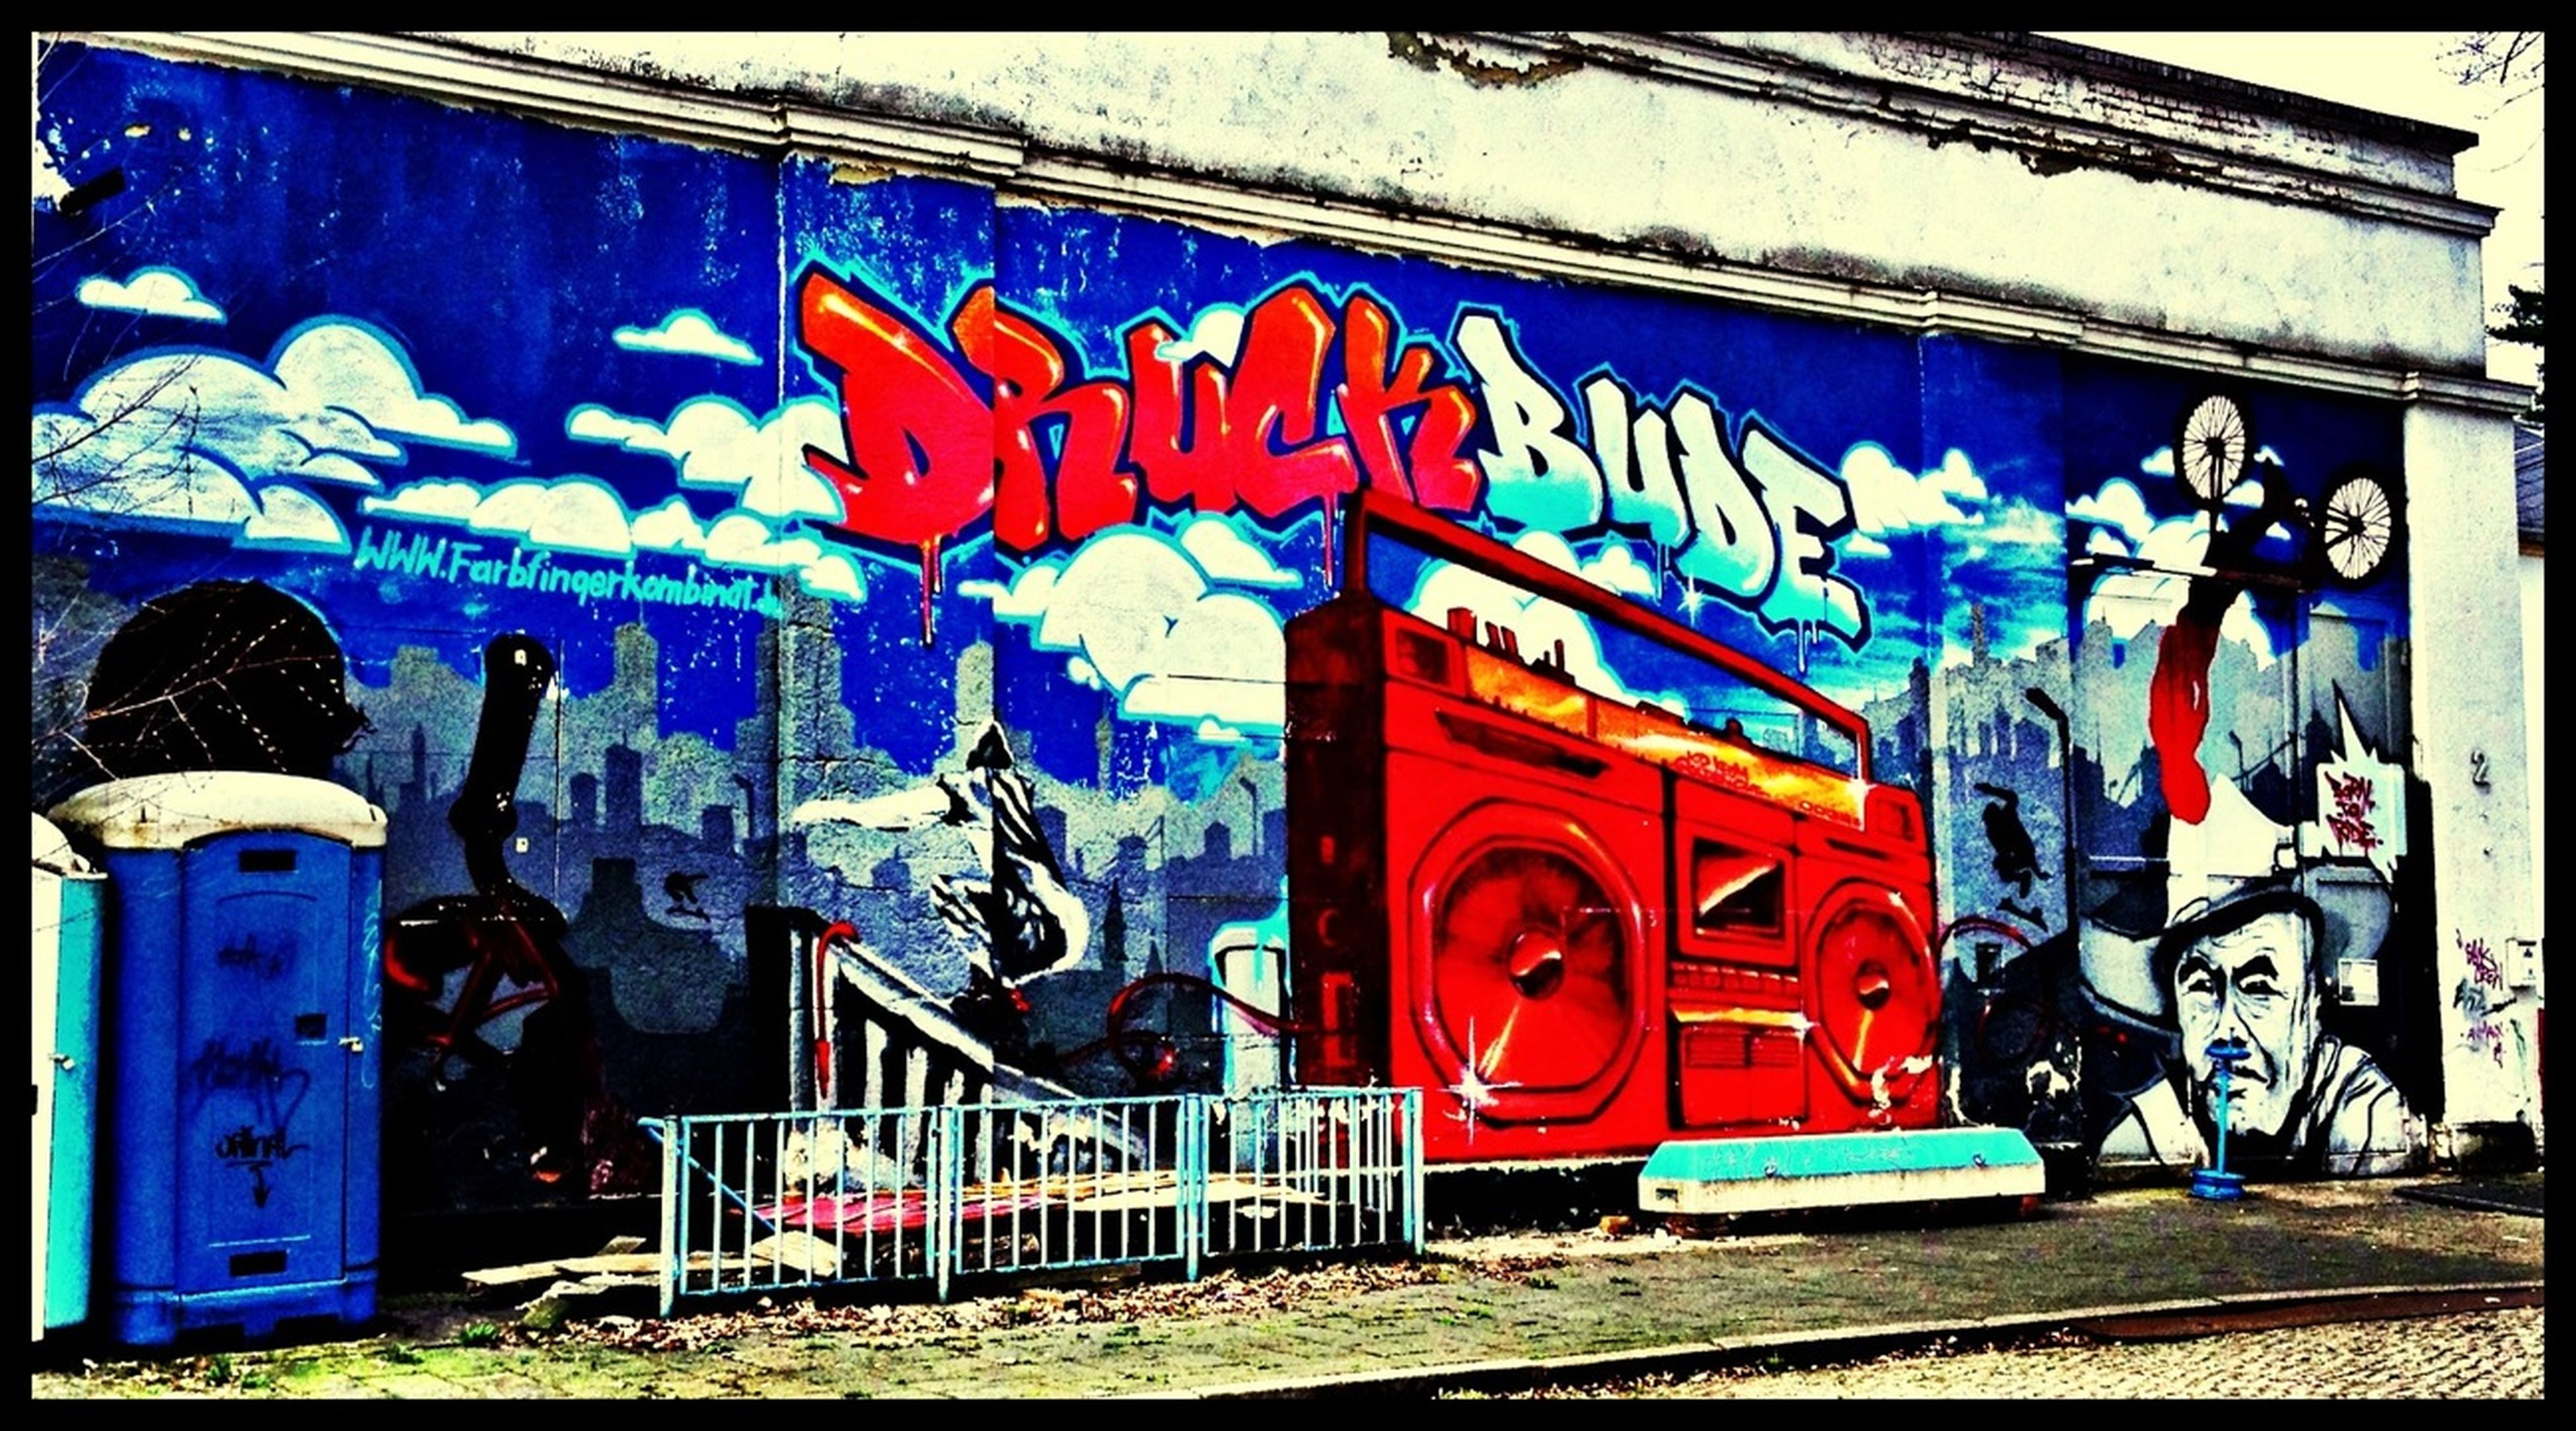 graffiti, art, creativity, art and craft, wall - building feature, built structure, architecture, multi colored, building exterior, blue, street art, text, wall, western script, vandalism, communication, day, auto post production filter, outdoors, mural